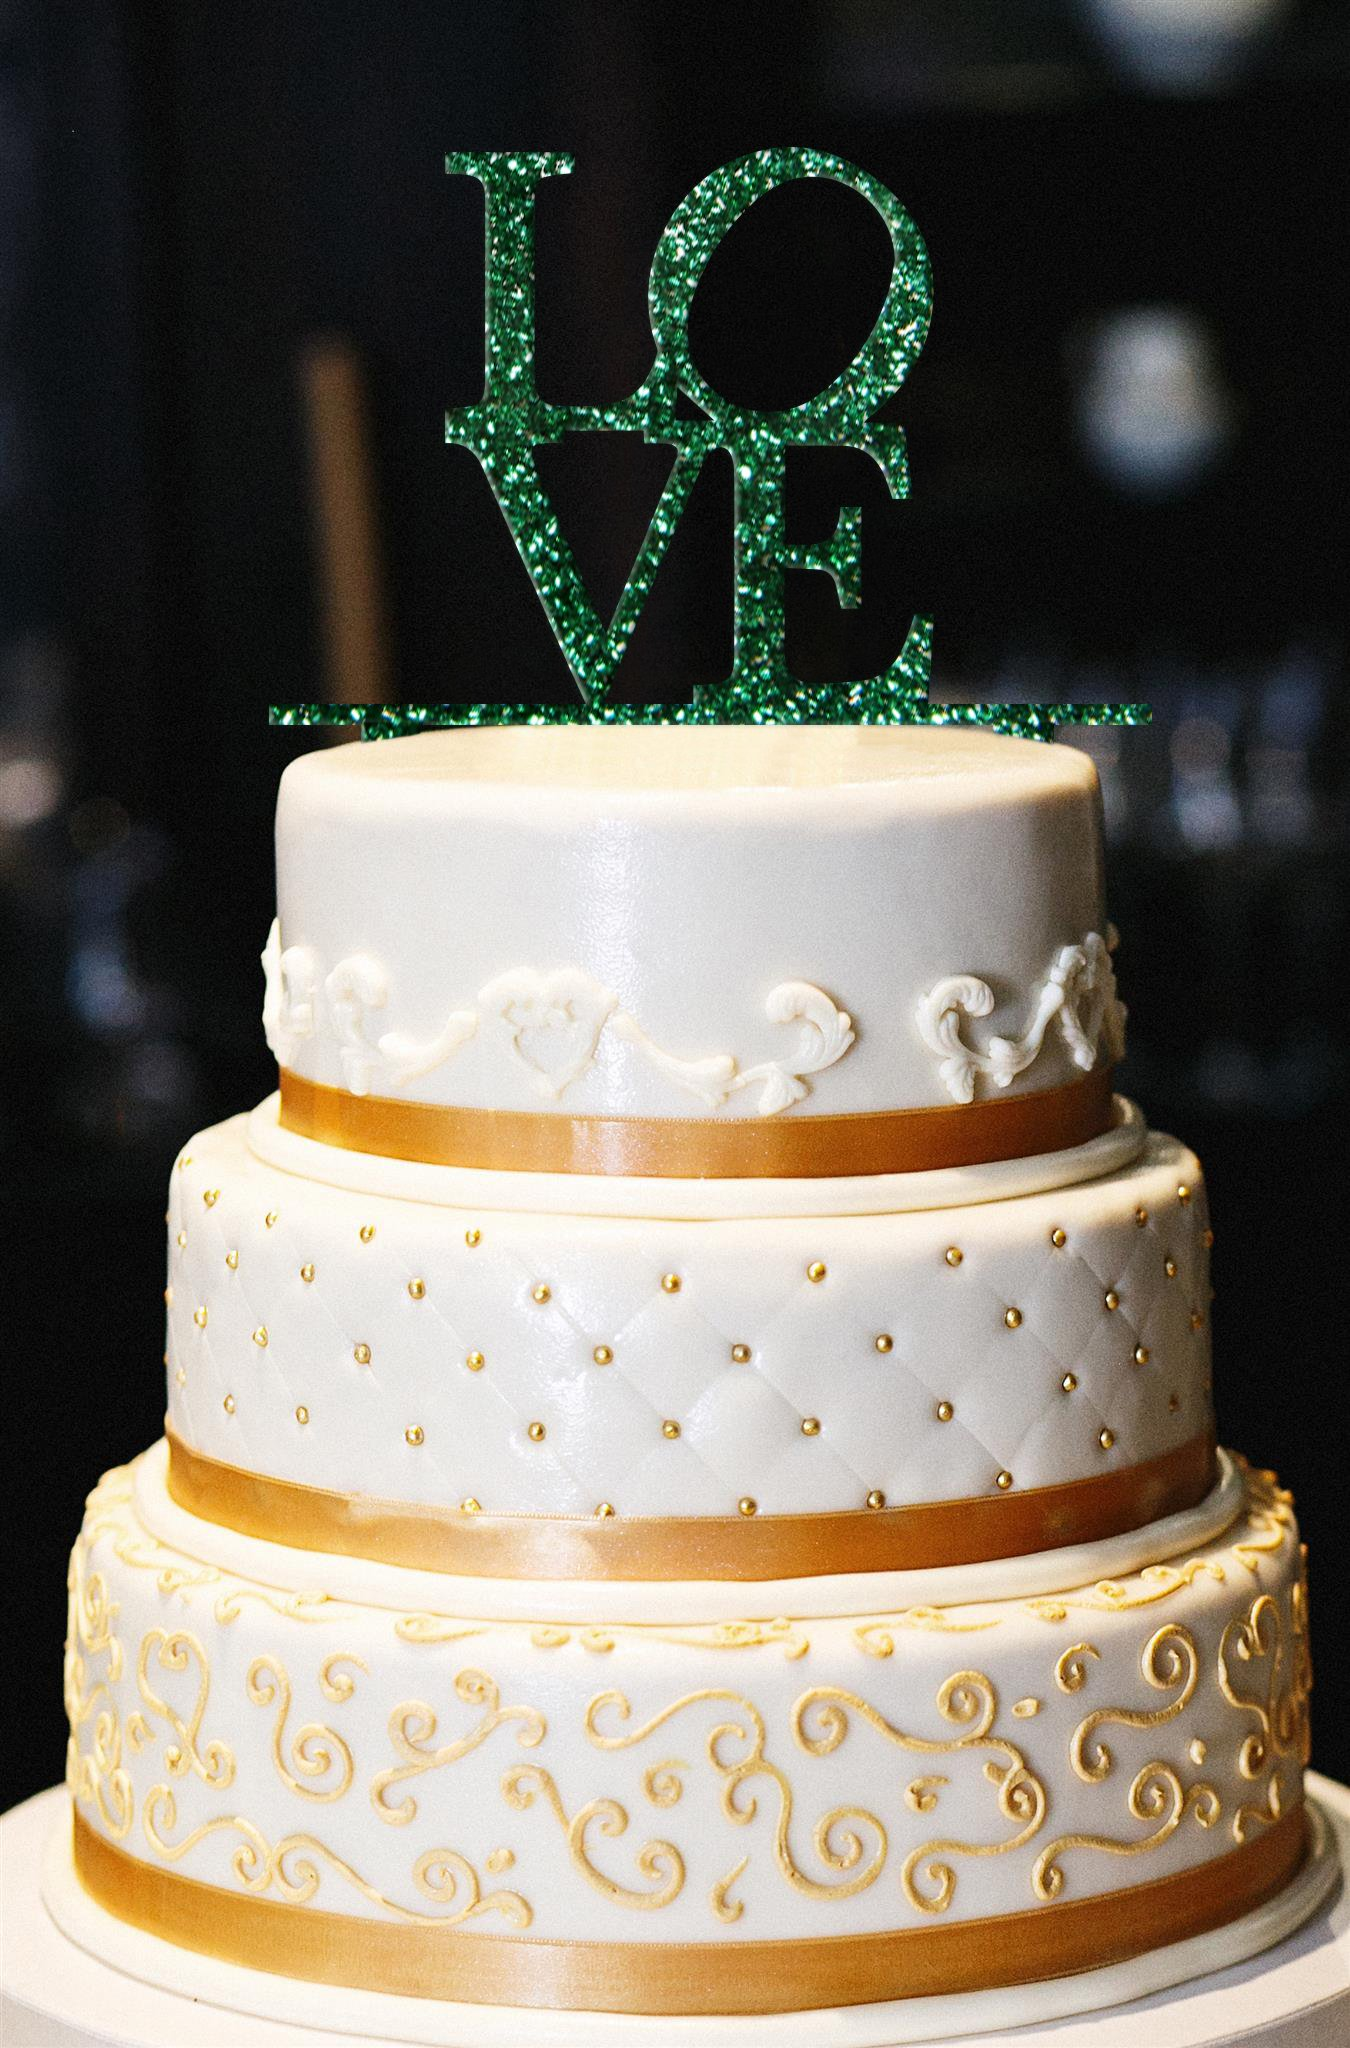 Love Wedding Cake Topper, Wedding Cake Topper, Engagement Cake Topper, Anniversary Cake Topper, Love Topper , Gold Glitter Cake Topper (13'', Glitter Emerald) by American Sign Letters (Image #1)